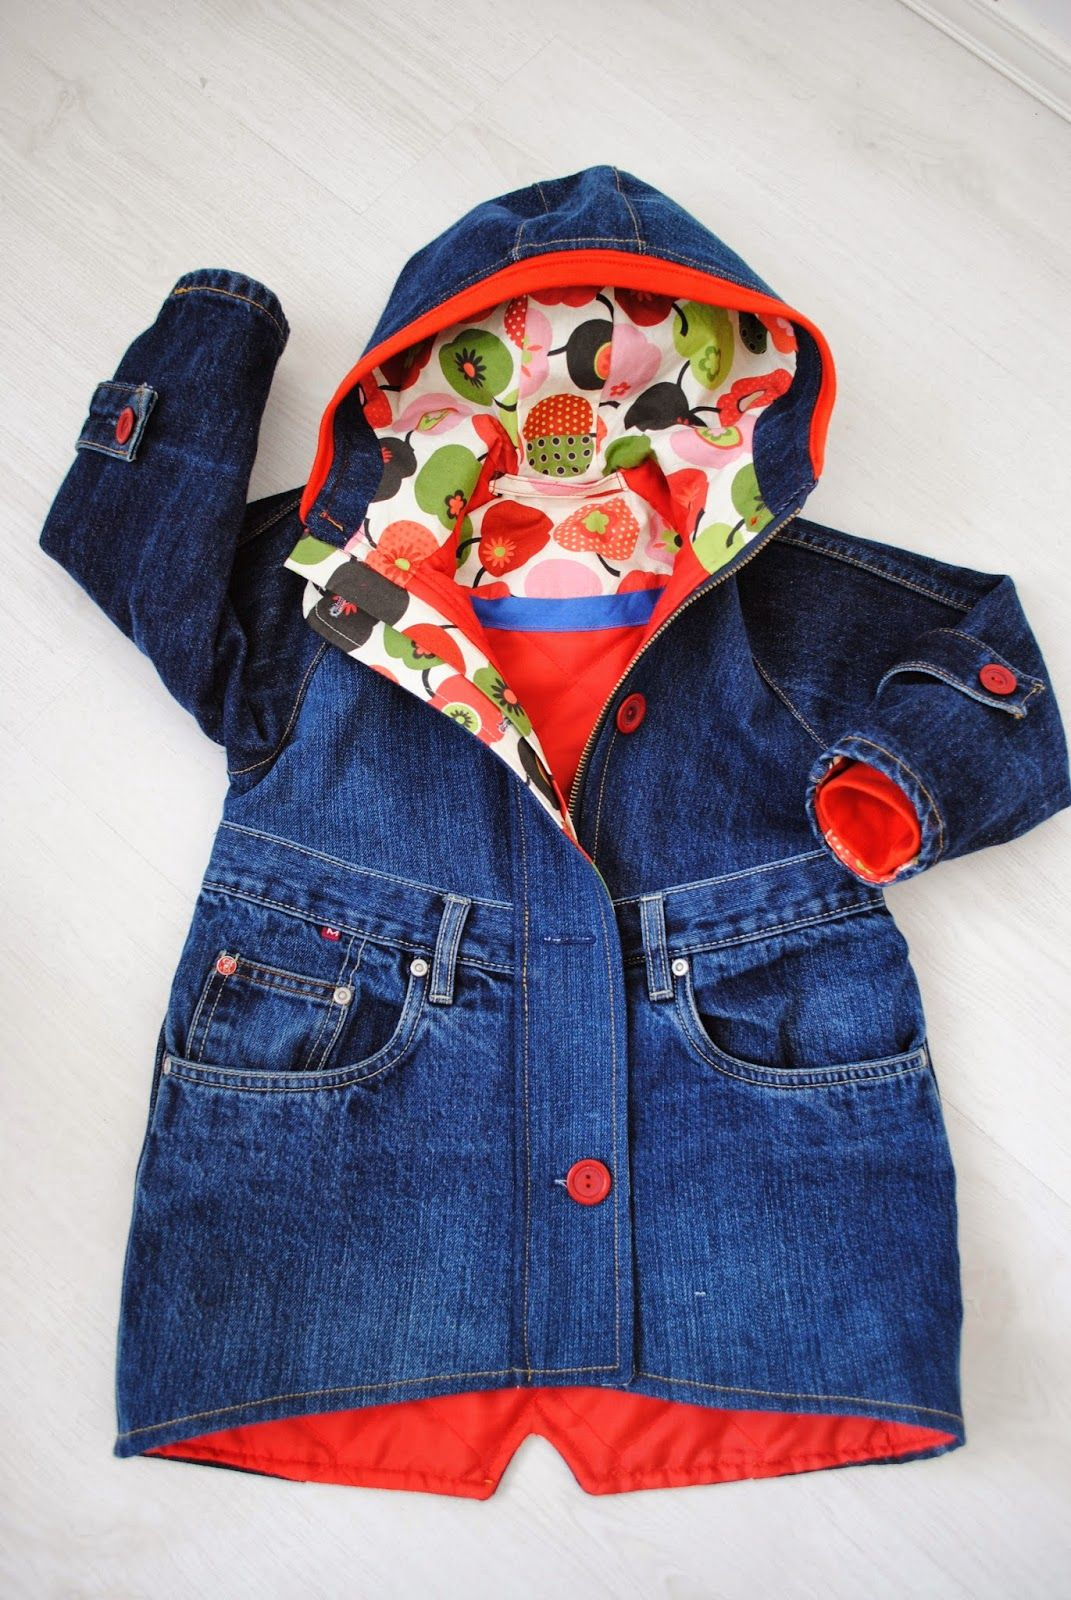 Klamotten Nähen Kids Jacket From Upcycle Jeans Great Way To Use Up All